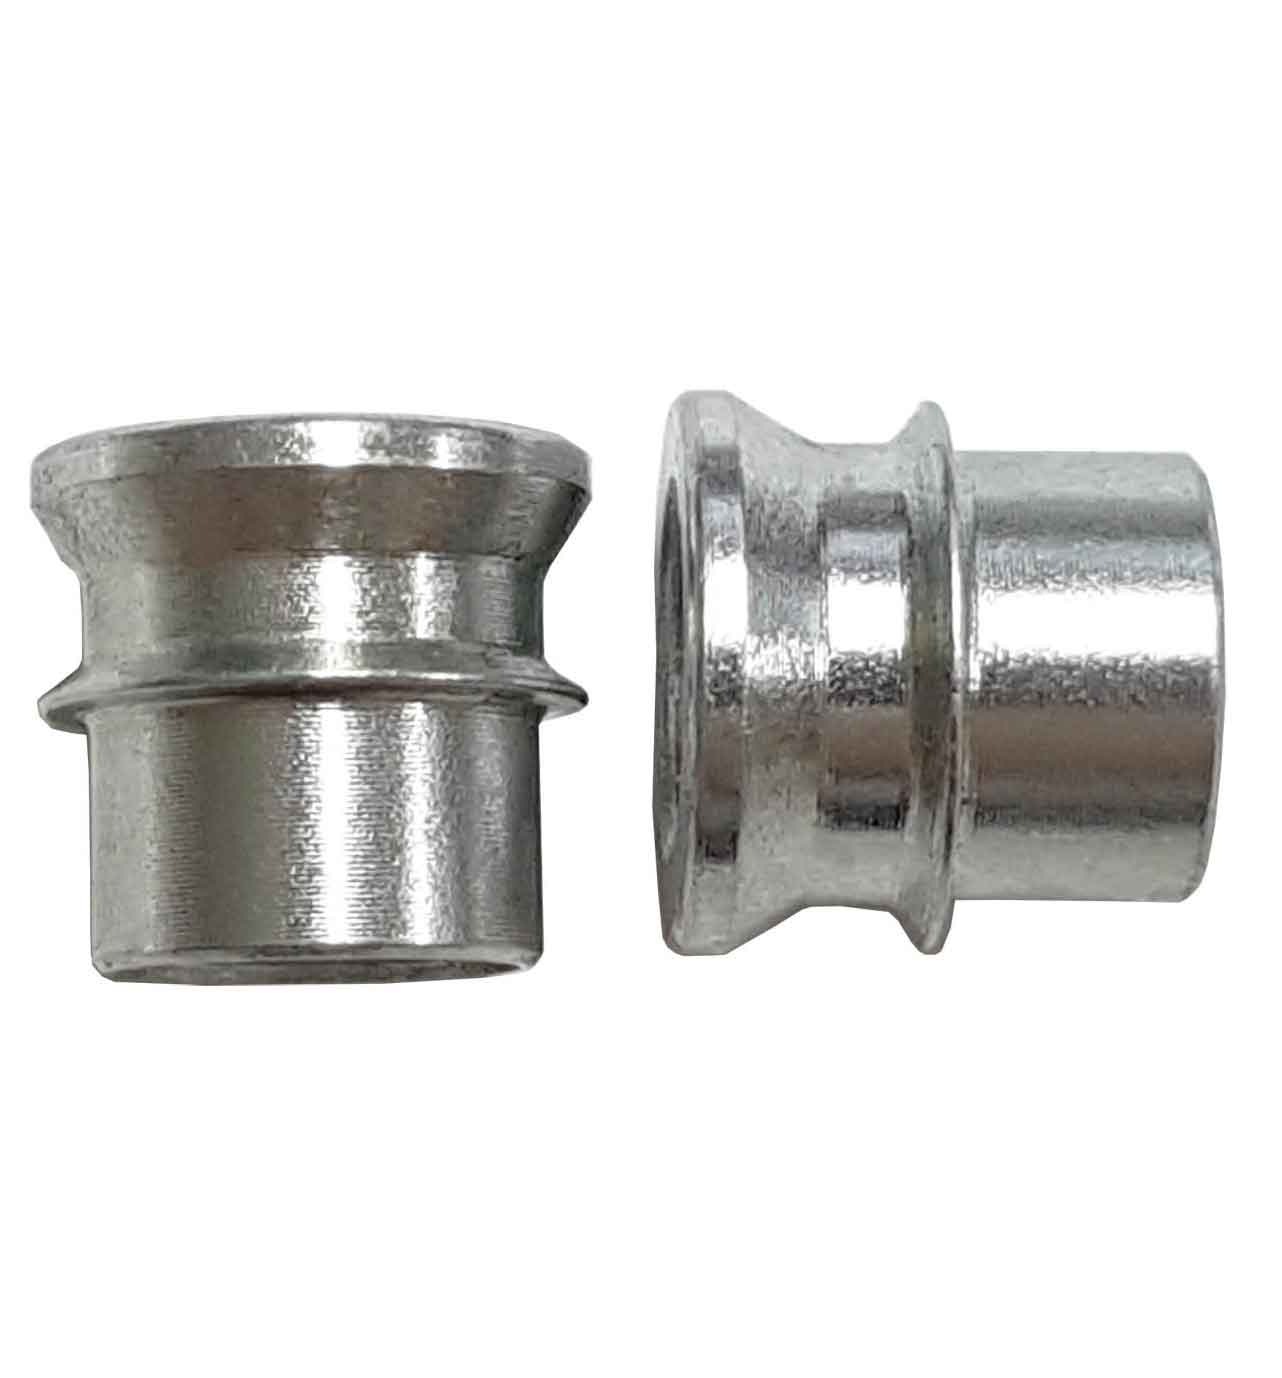 M20 to M16 Rod End Misalignment Reducers